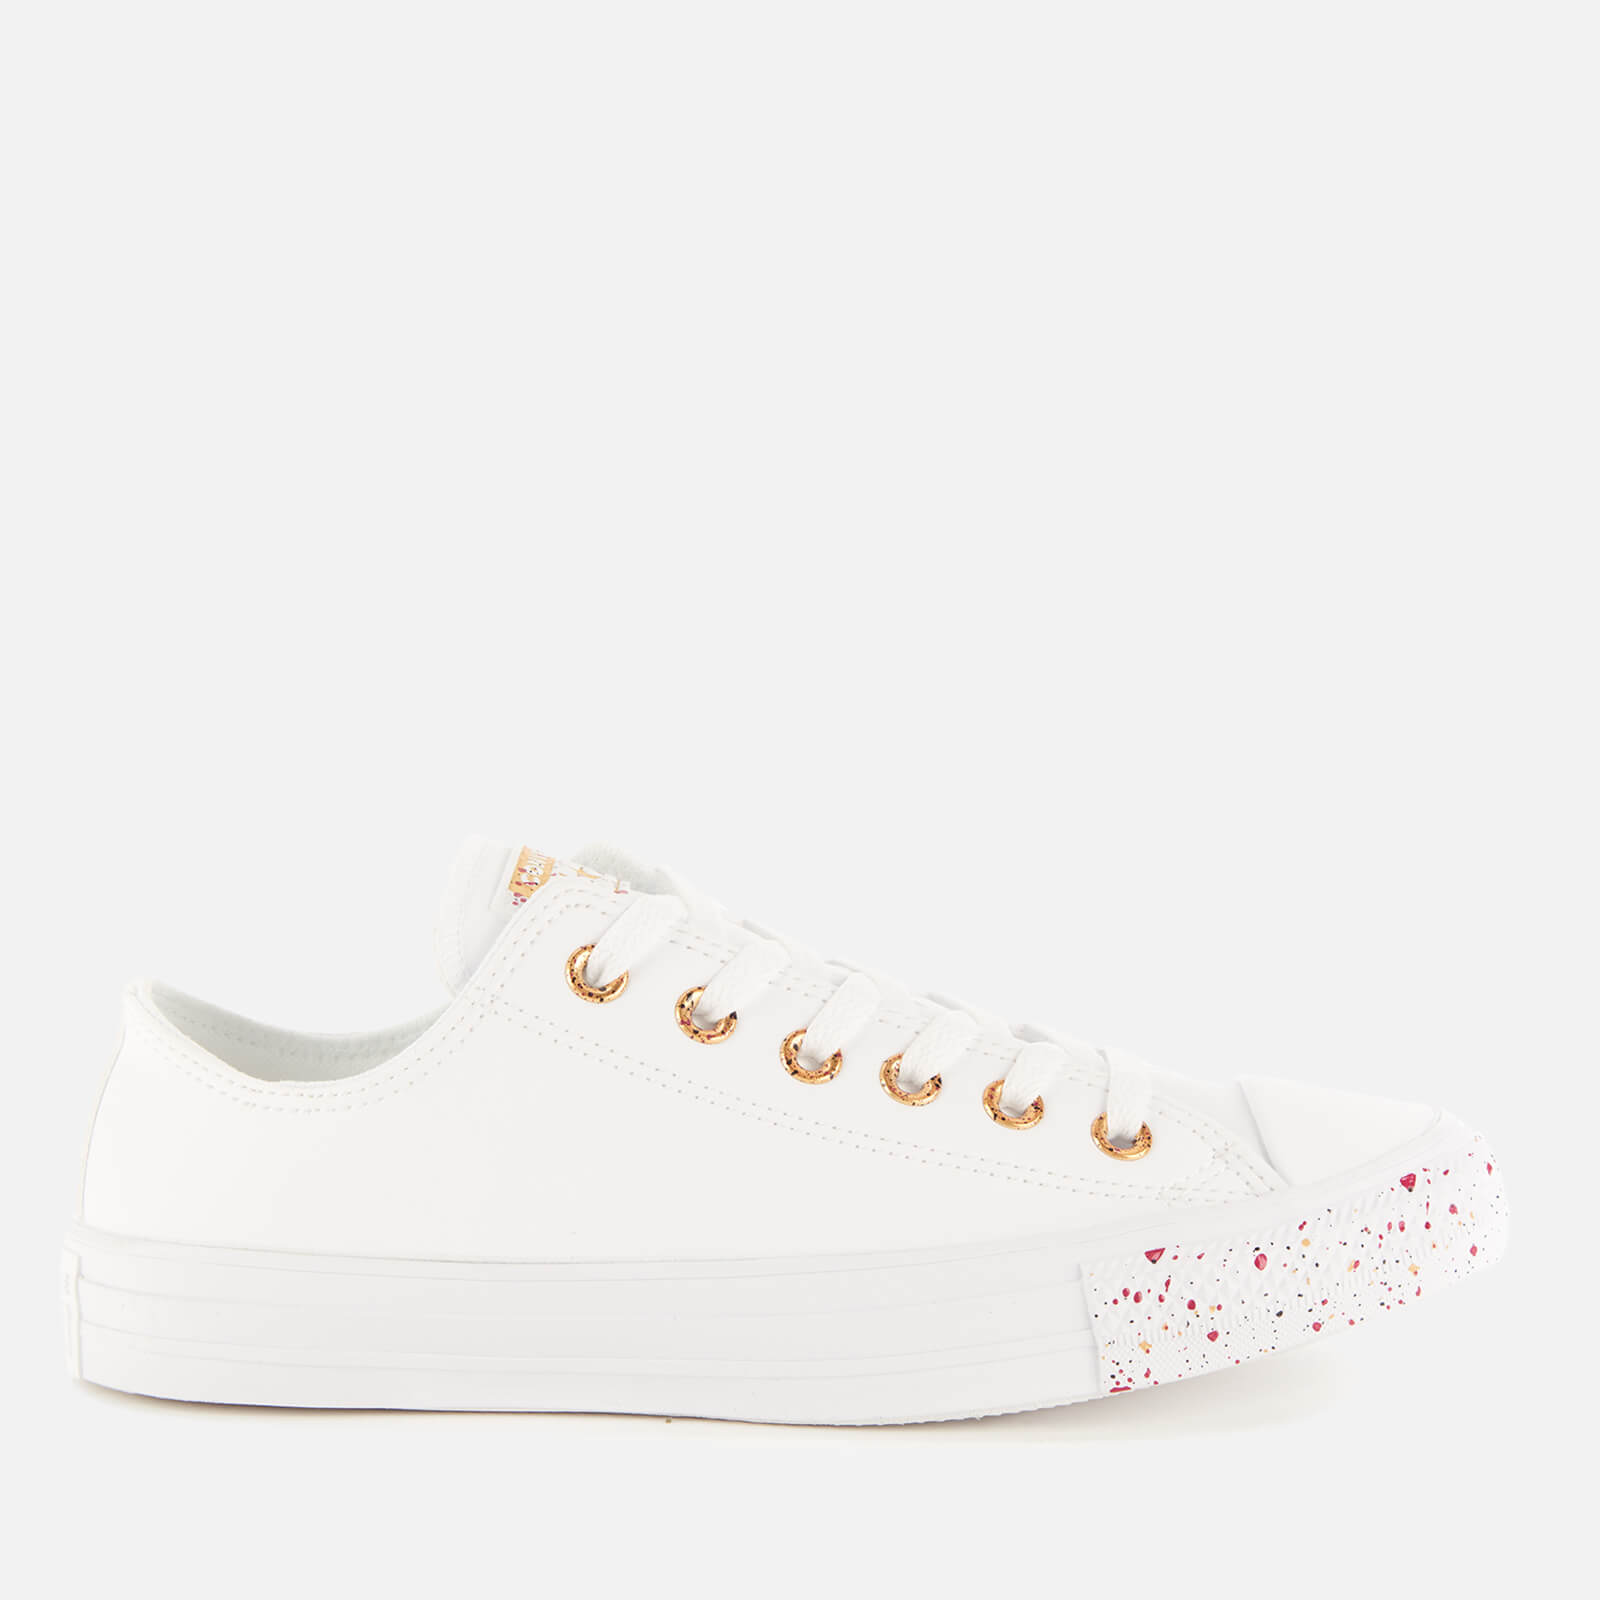 Converse Women's Chuck Taylor All Star Speckled Ox Trainers WhiteGoldRose Maroon